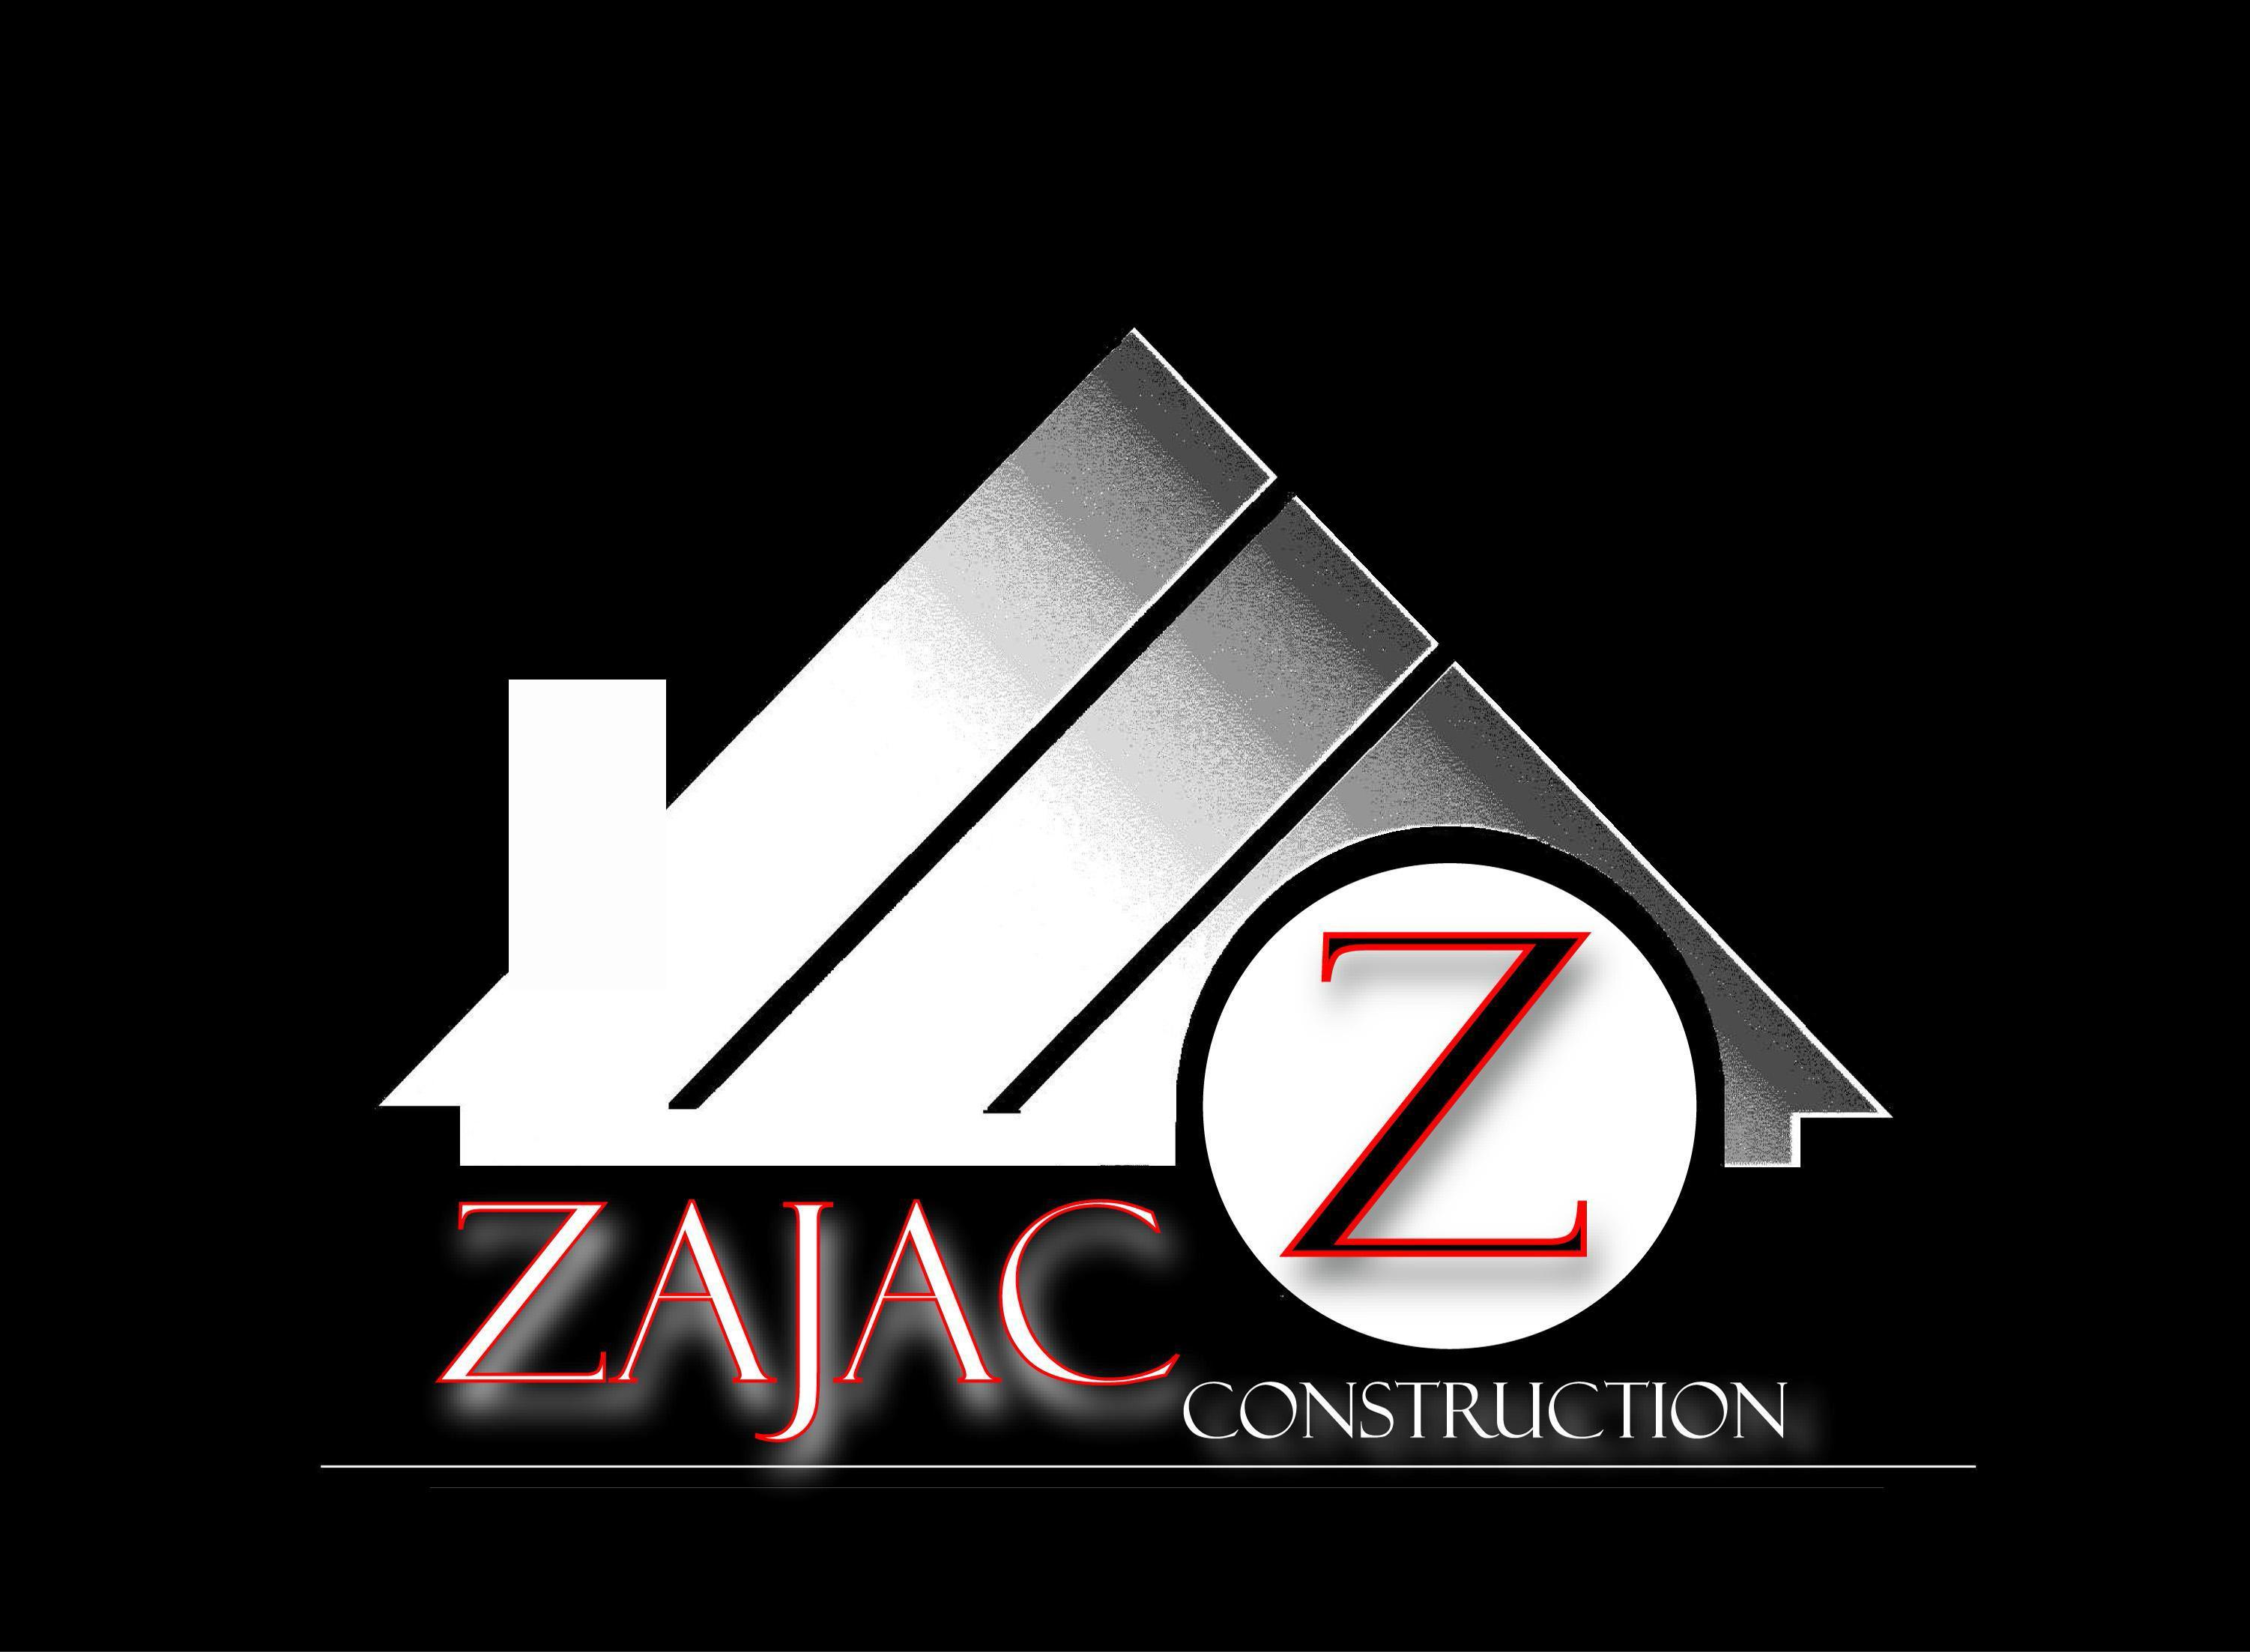 Zajac Construction